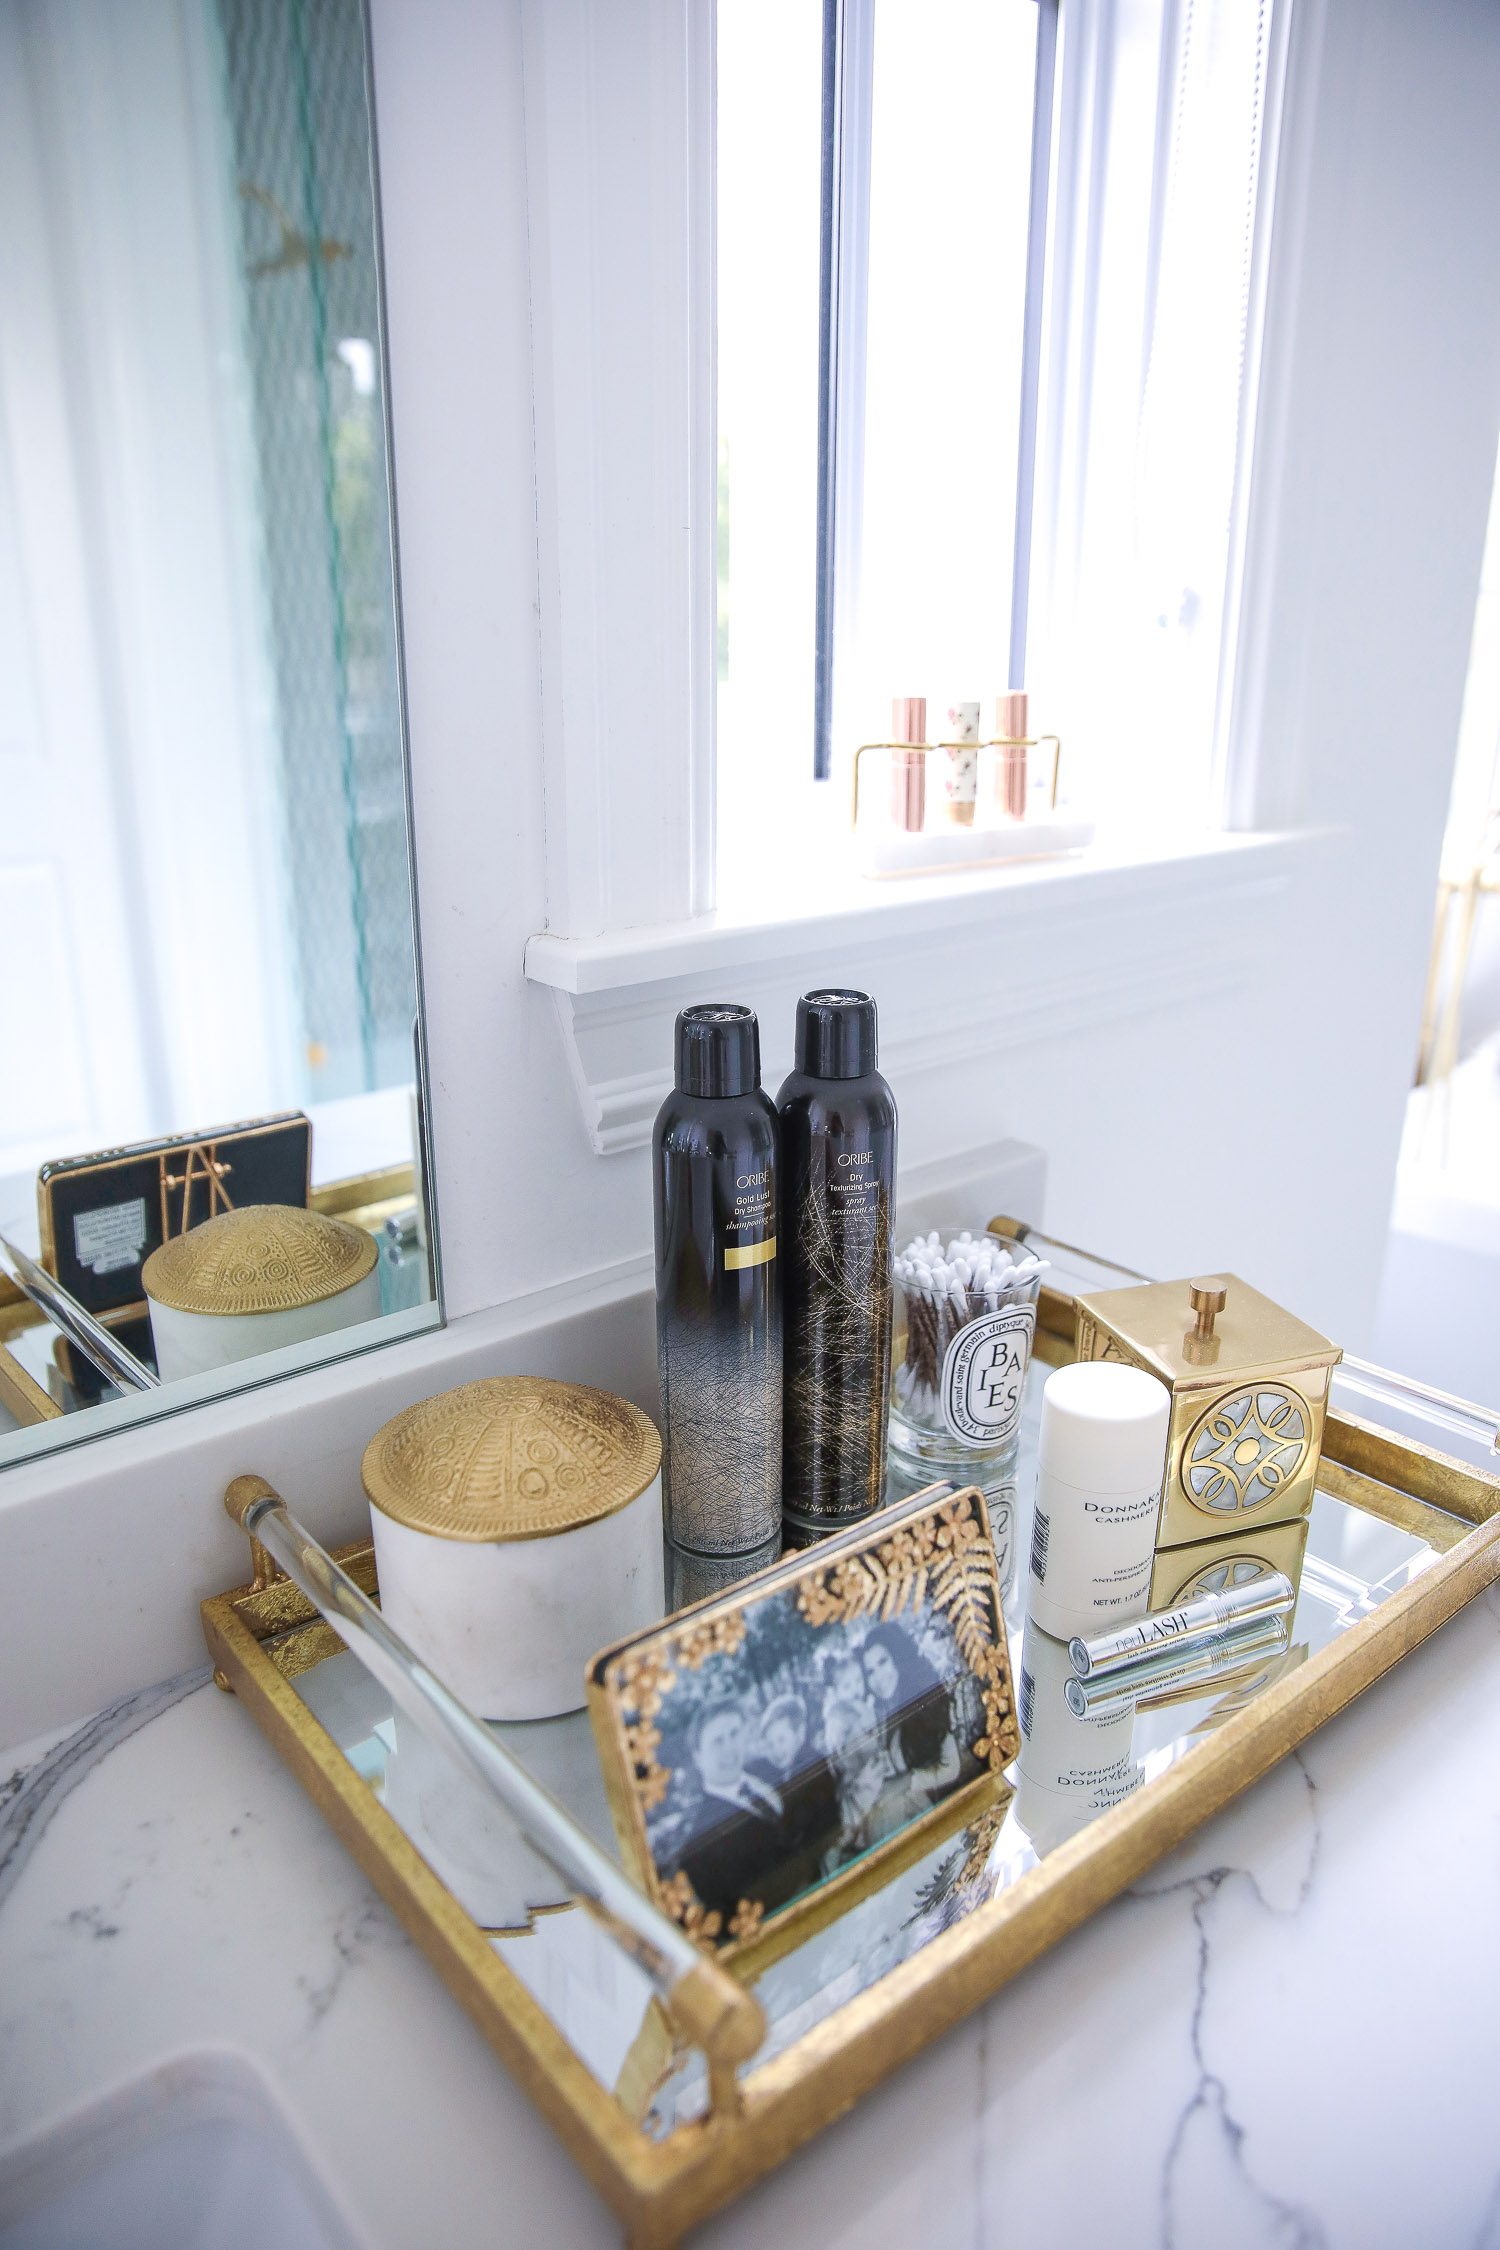 Anthropologie home decor summer 2021, oribe dry texture spray NSALE 2021 | Nordstrom Anniversary Sale 2021 by popular US life and style blog, The Sweetest Thing: image of a gold metal and mirrored tray filled with a white candle, Oribe dry texture spray bottles and gold picture Fram with a black and white family photograph.